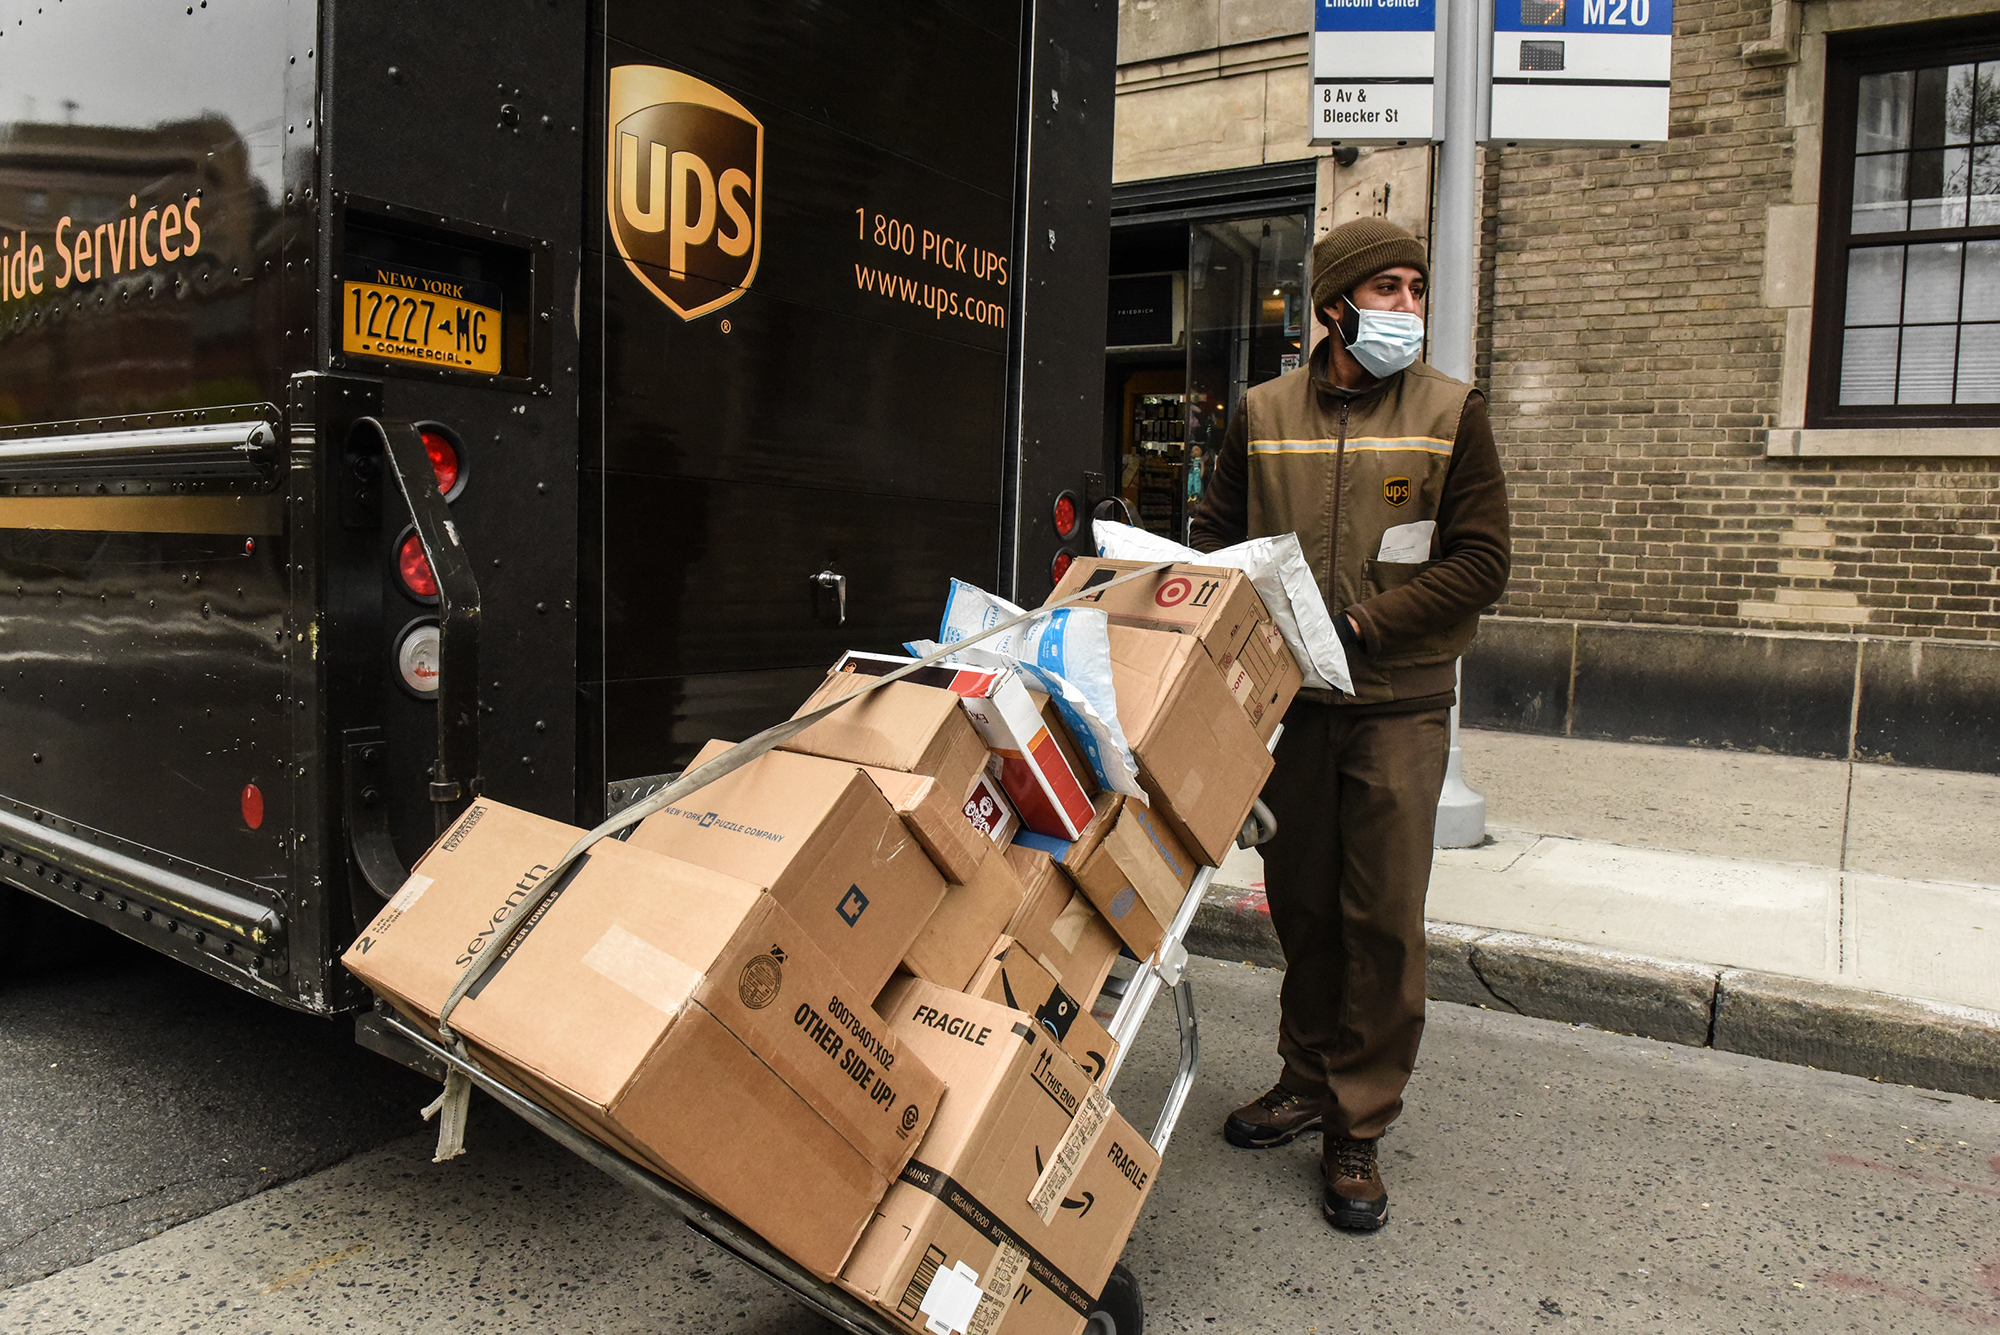 Your UPS packages could get a lot more expensive this fall